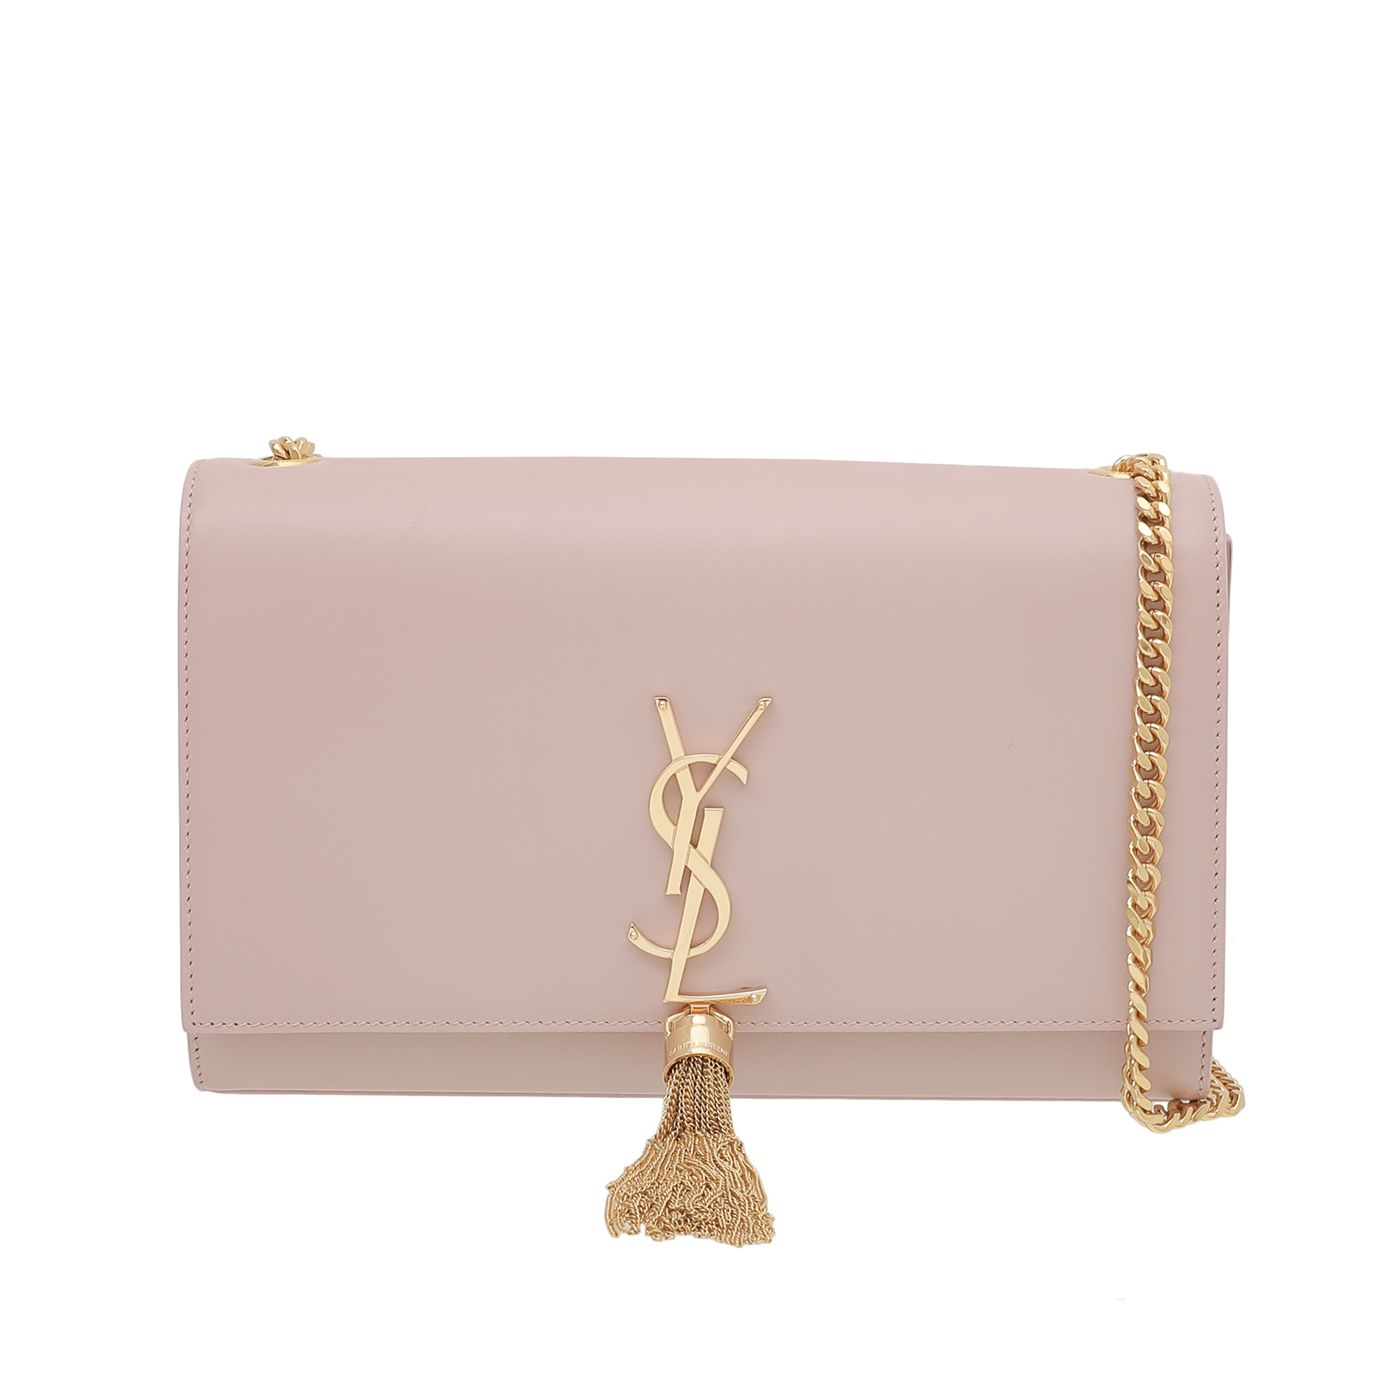 YSL Pink Monogram Kate Tassel Bag